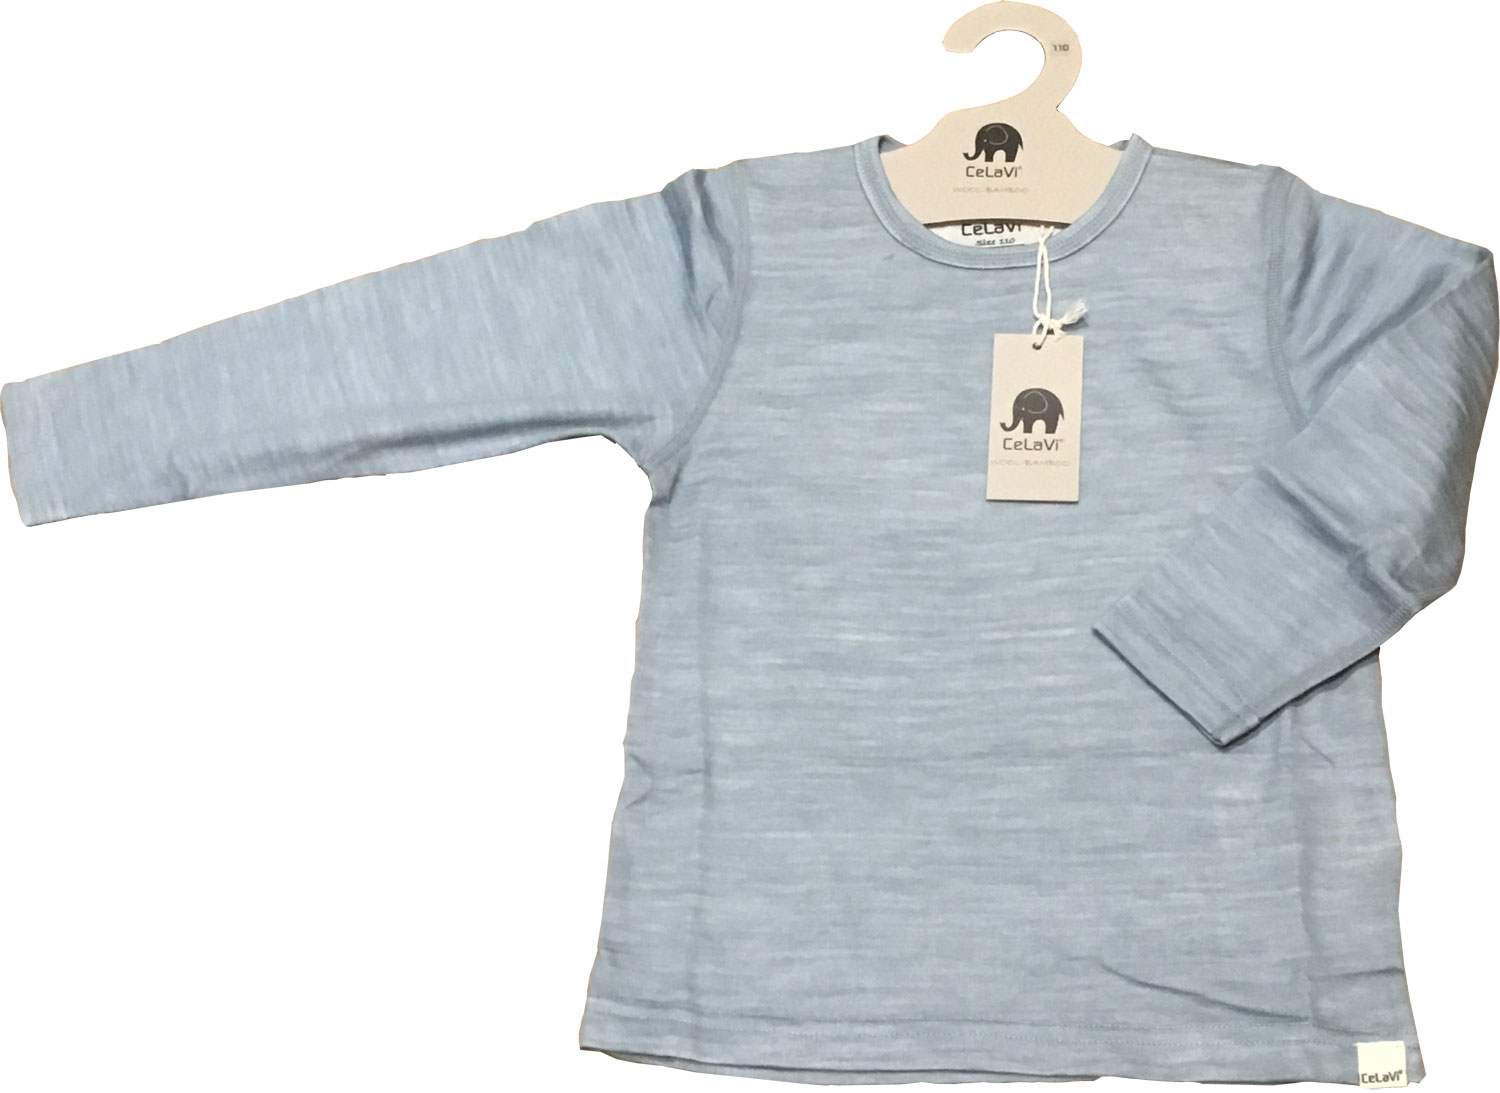 dea330f330 CelaVi luxury kids base layer top with merino wool outer layer